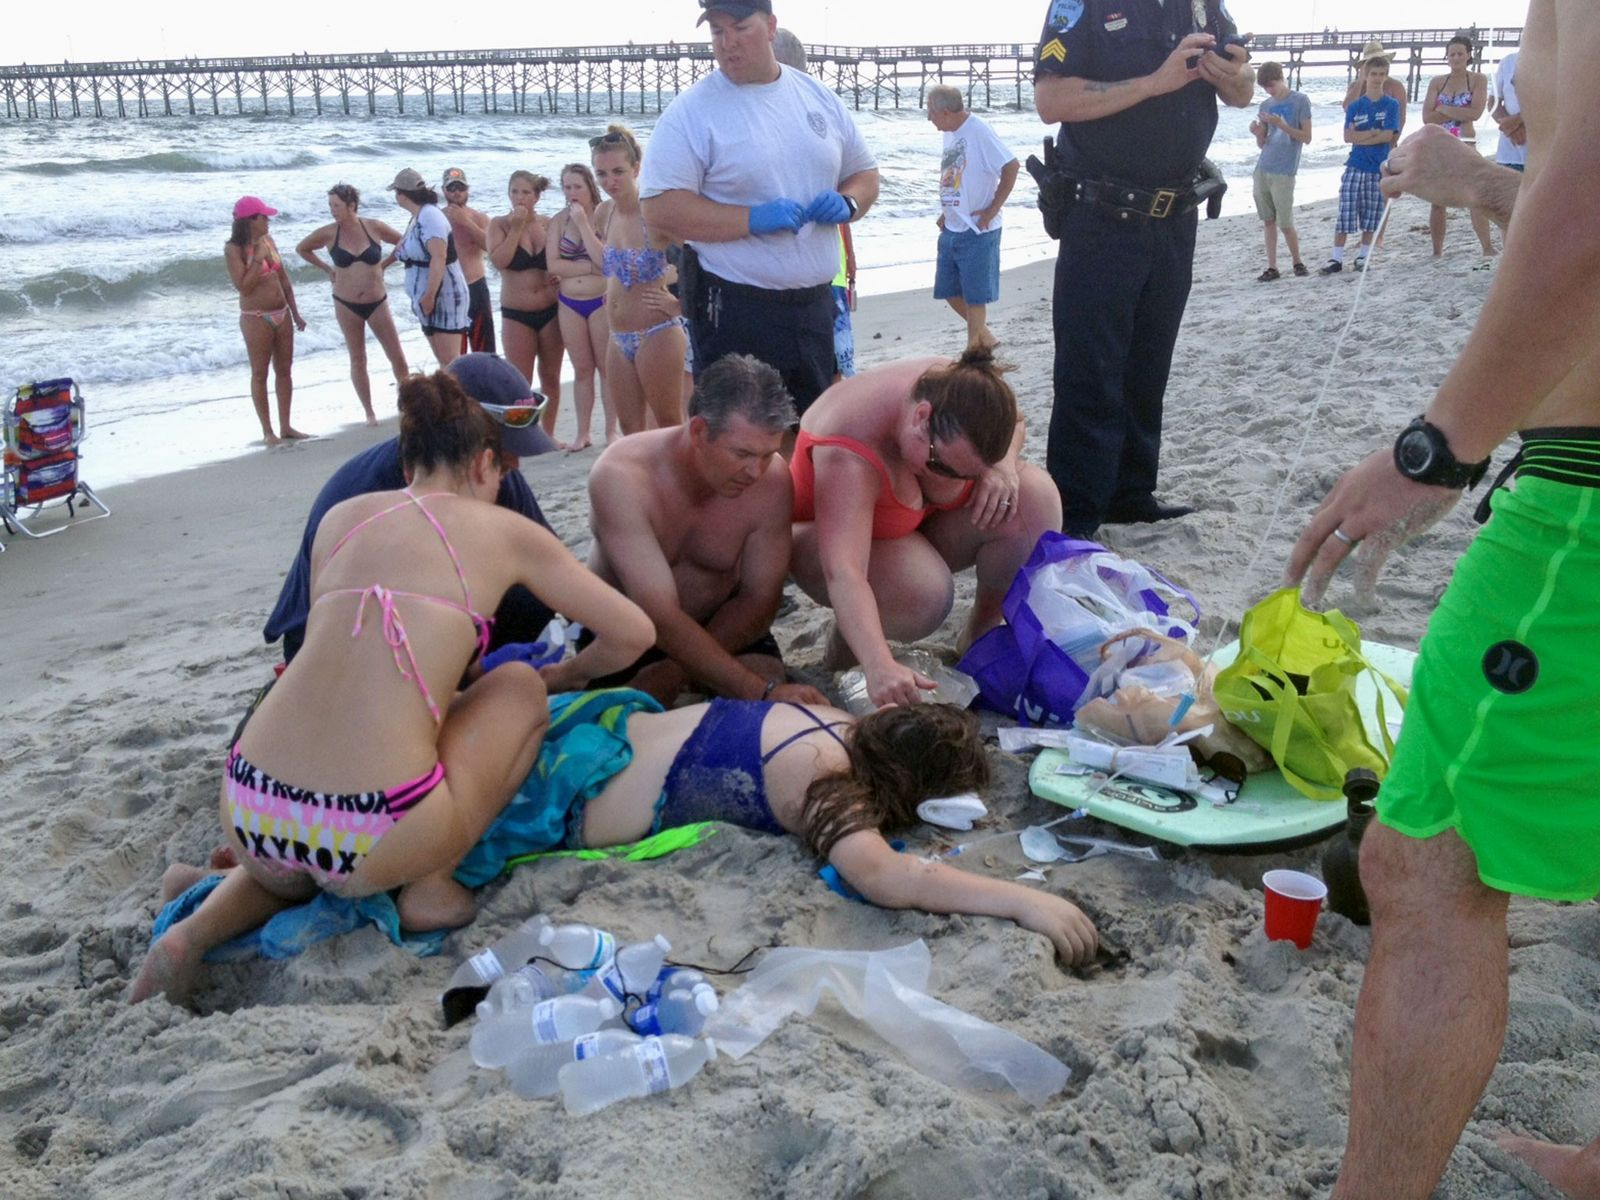 A teenage girl was attacked by a shark in Oak Island, North Carolina, on June 14, ...